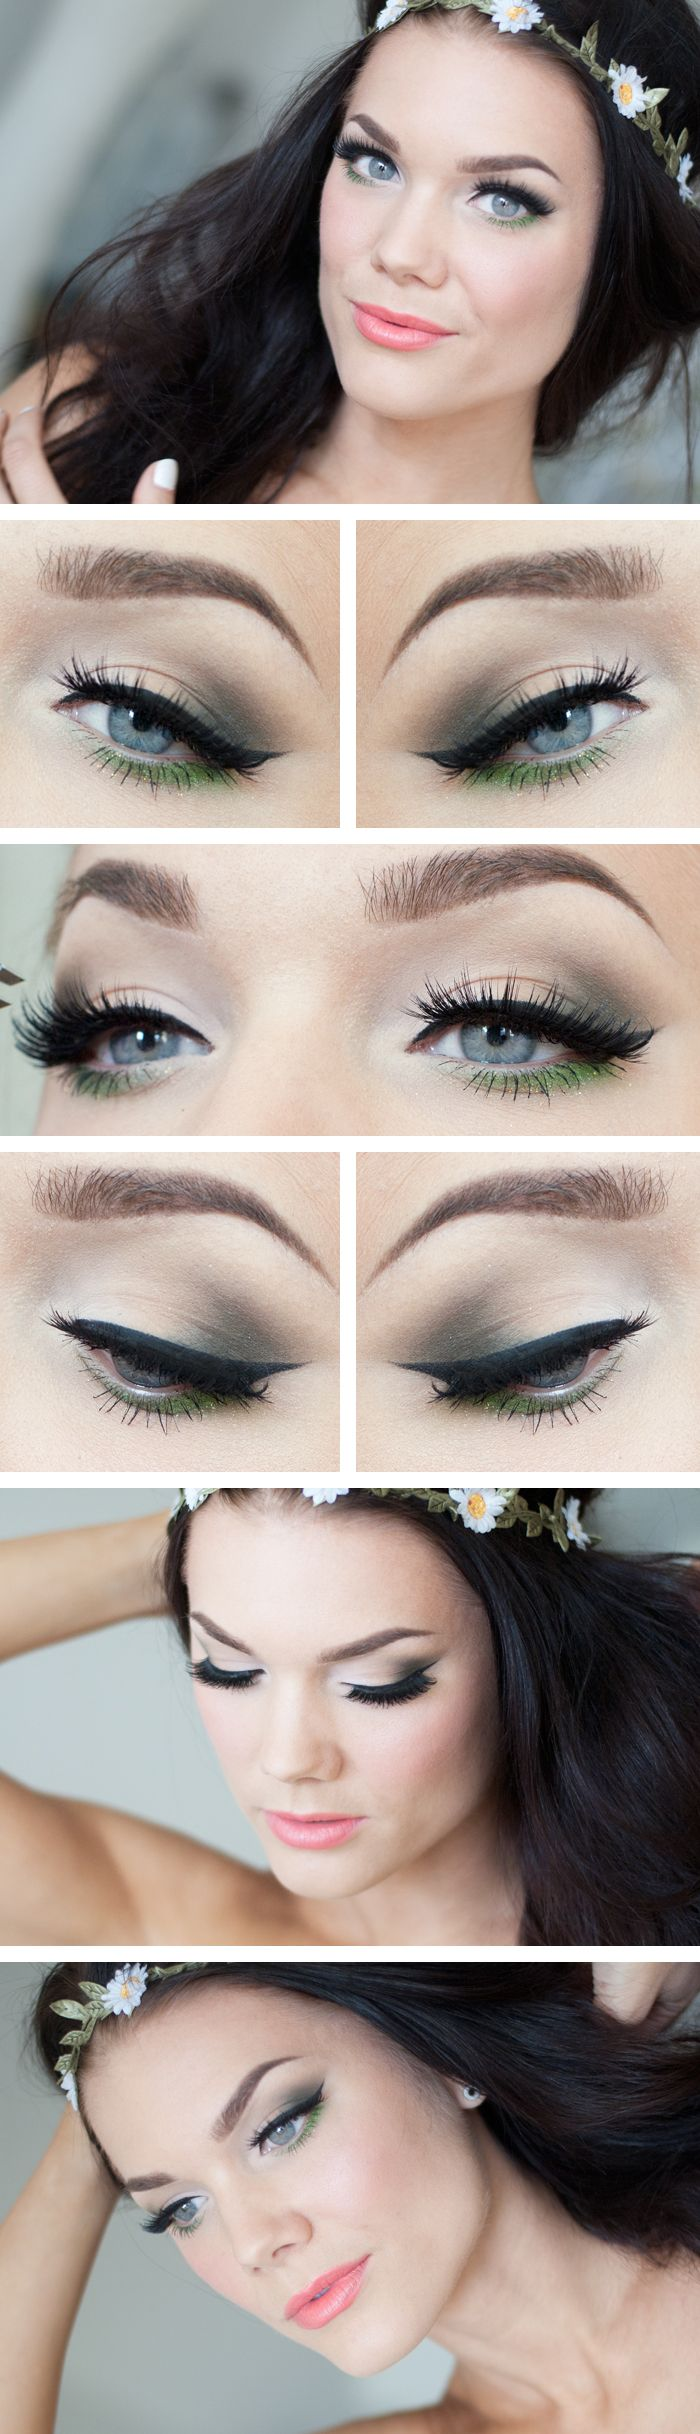 "Today's Look : "" Green Spring"" -Linda Hallberg ( a very soft, very beautiful look... very soft smokey eye, winged eyeliner with a fresh green on the lower lashline, a bit of sparkle completes the look without overpowering it at all. Love how she pairs this particular eye with a salmony peach/coral..) 05/20/13"